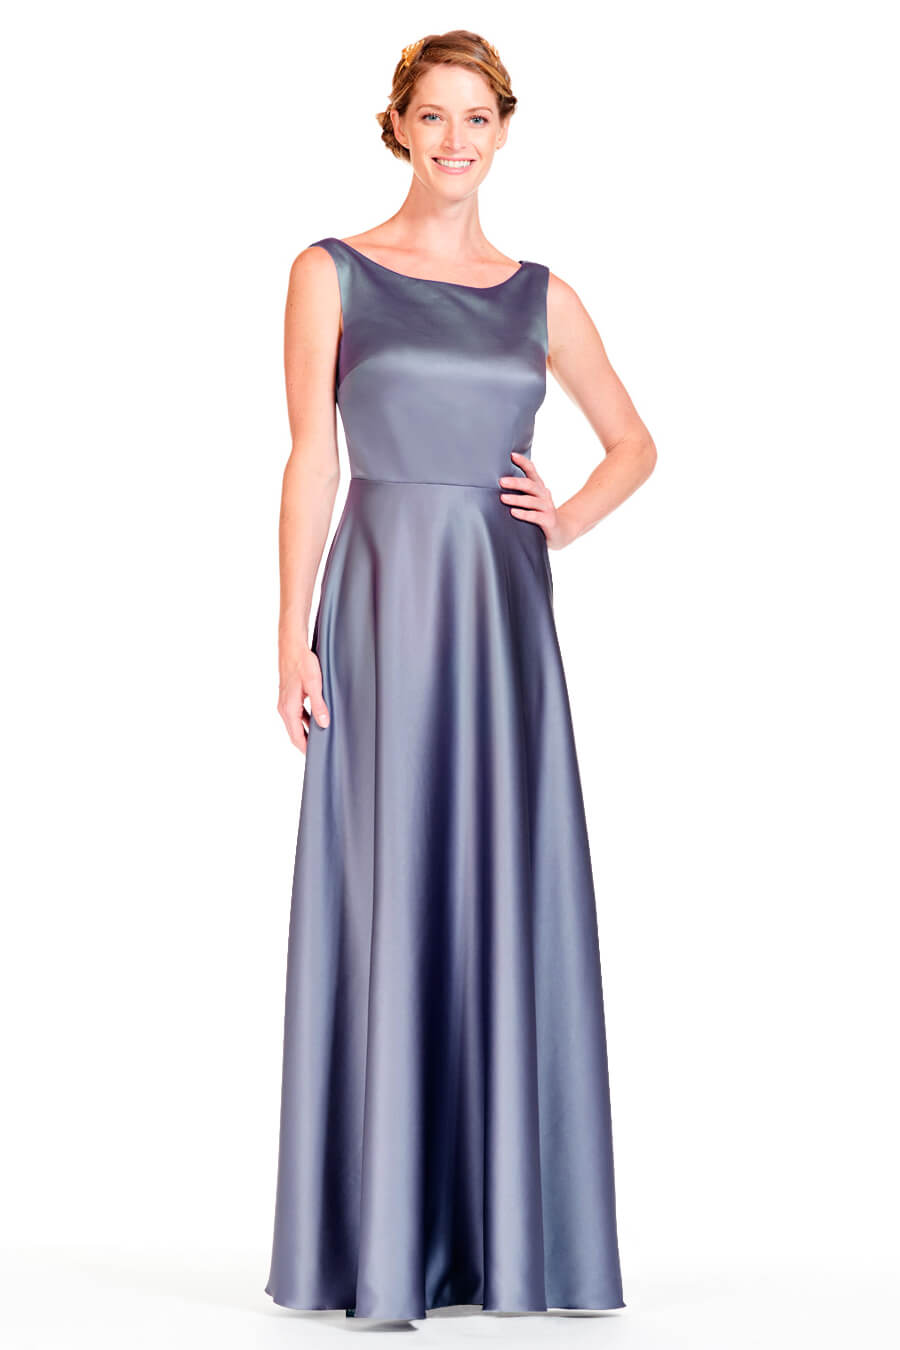 My Favorite | Bridesmaid Dresses, Evening Gowns & Flower Girl ...